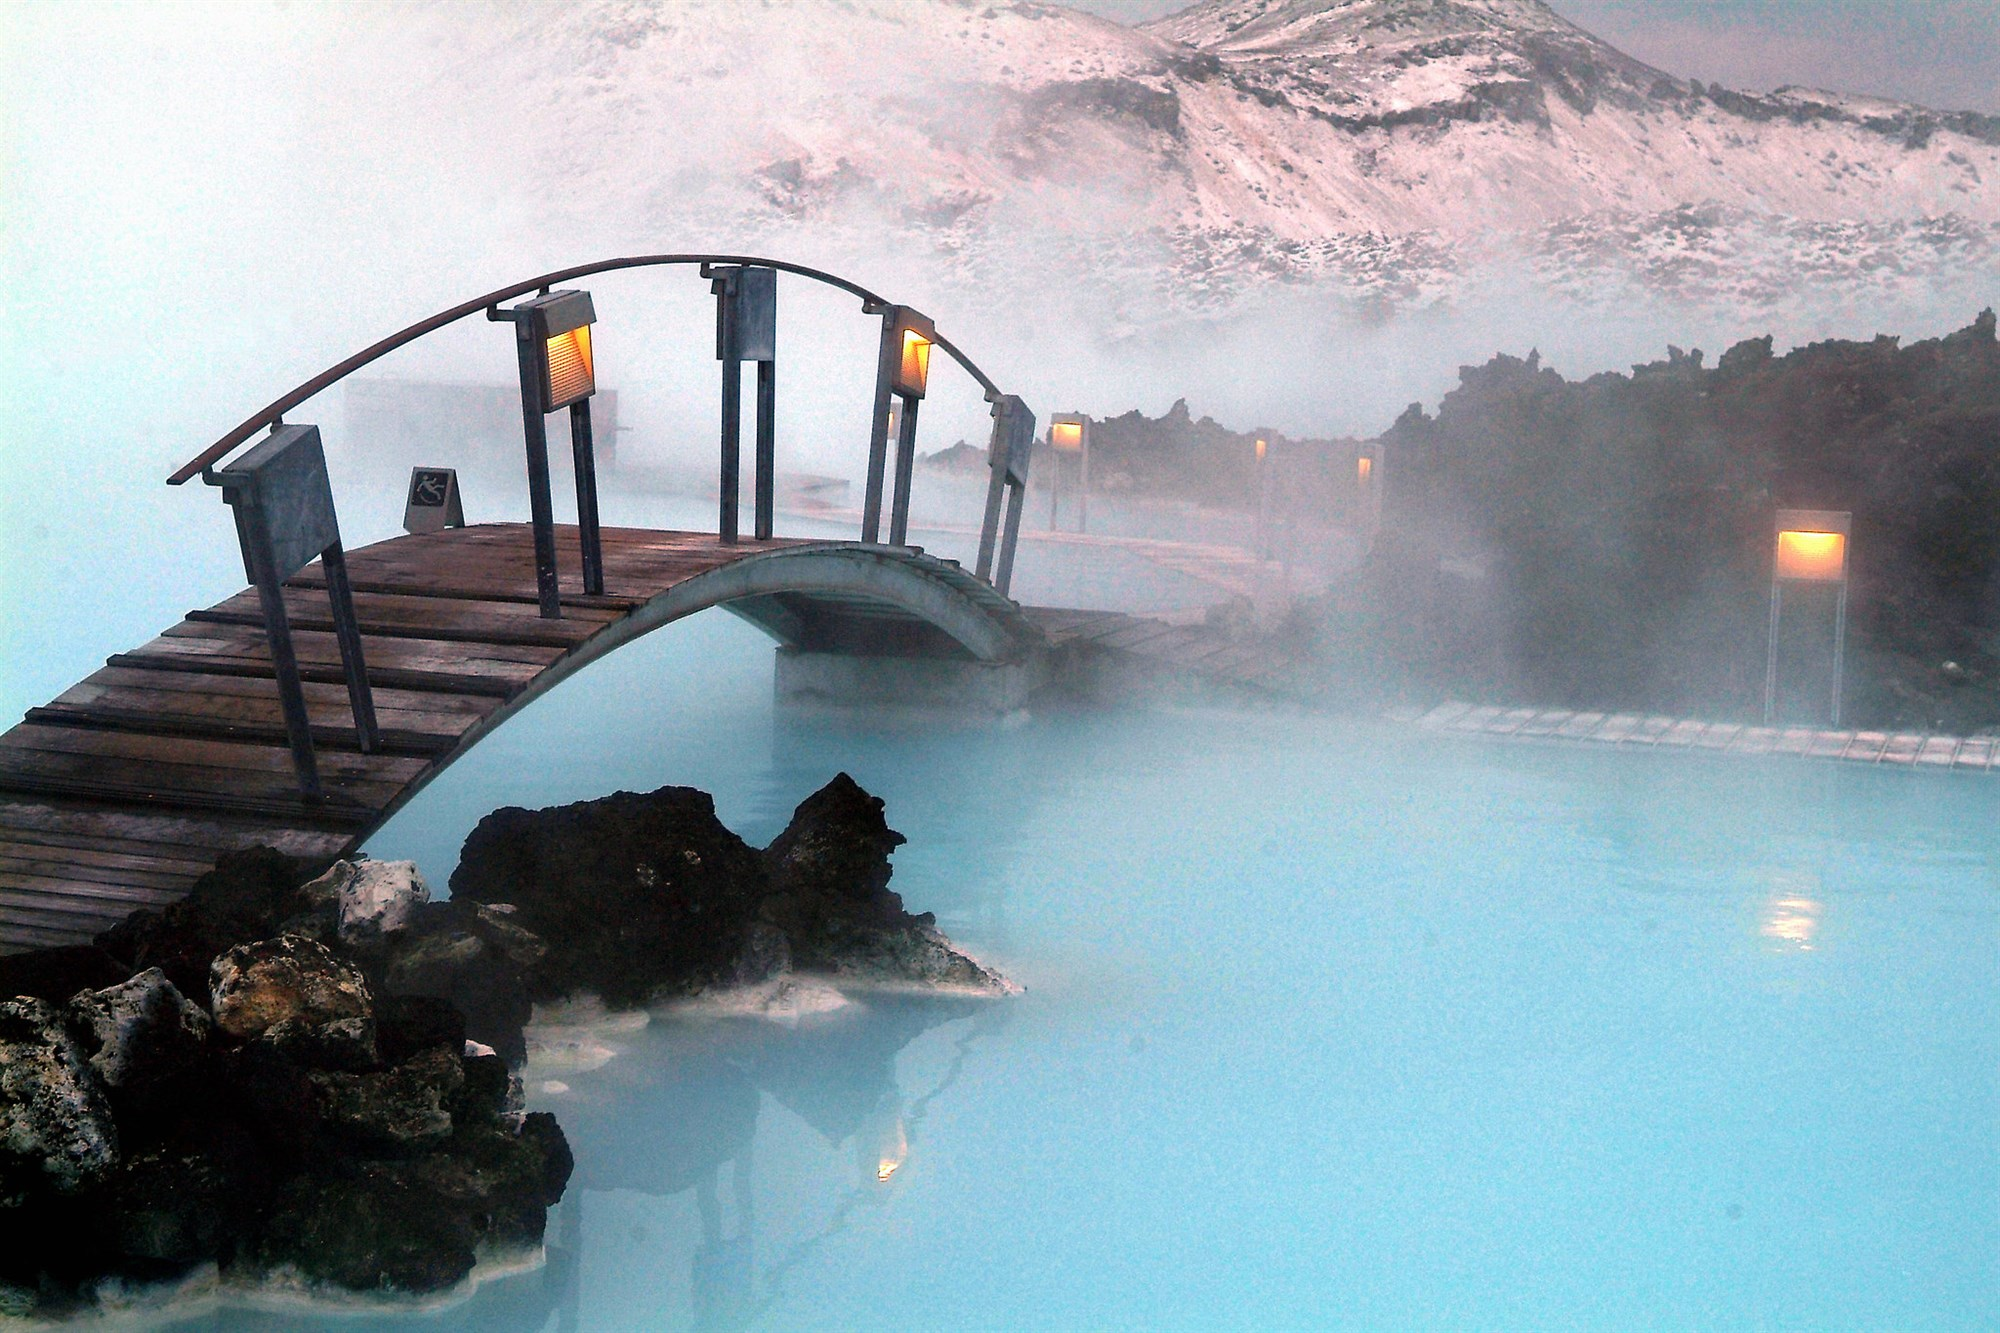 Blue lagoon iceland, blue water with a wooden bridge